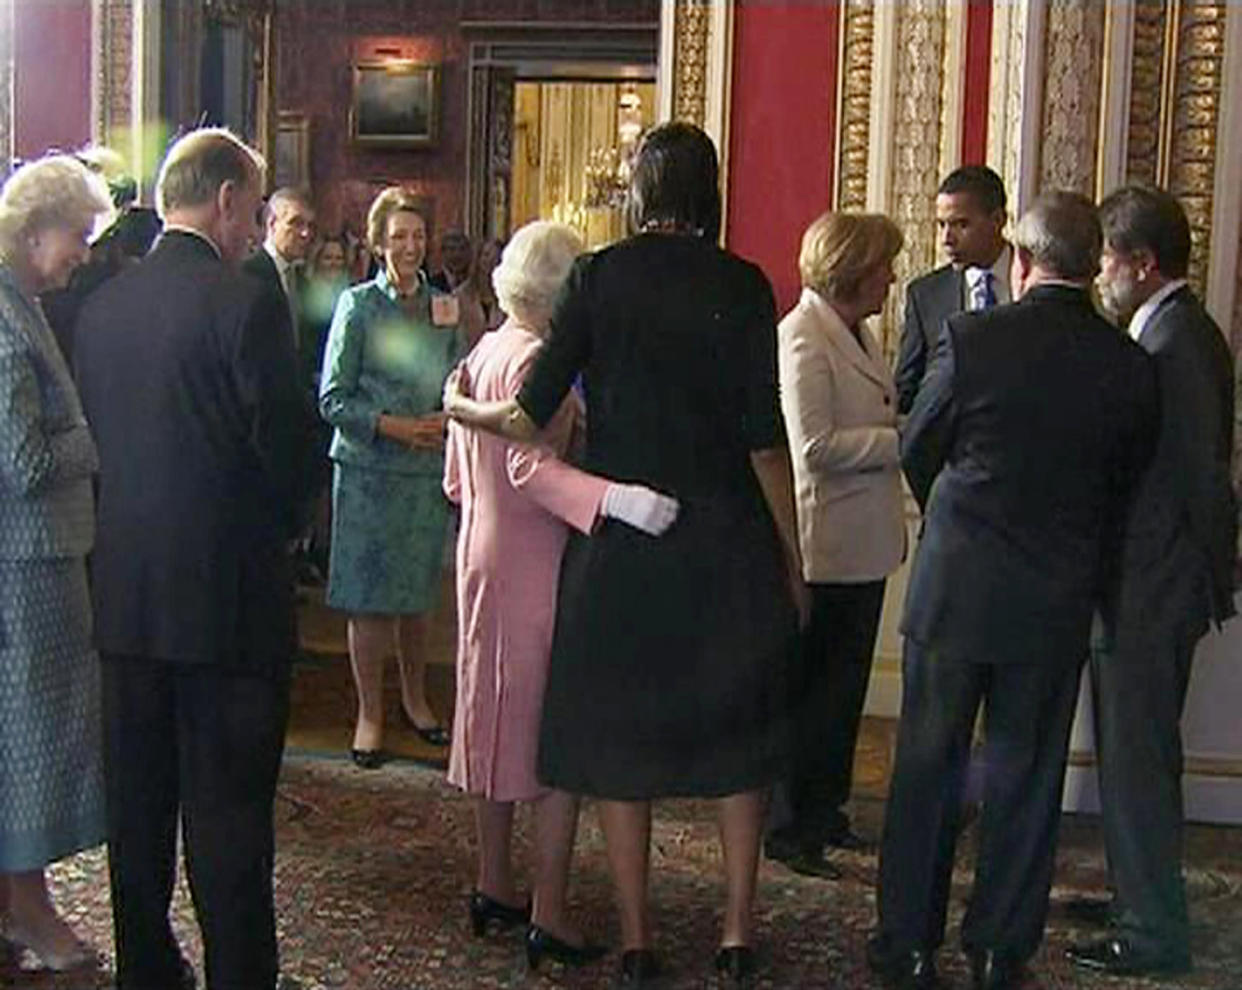 A video grab from television footage shows U.S. first lady Michelle Obama (C) standing with Britain's Queen Elizabeth during a reception for G20 leaders at Buckingham Palace in London April 1, 2009. World leaders arrived in London on Wednesday ahead of a G20 summit meeting under intense pressure to produce a morale-boosting response to the worst economic downturn since the 1930s.  REUTERS/POOL via Reuters Tv   (BRITAIN BUSINESS POLITICS ROYALS) FOR EDITORIAL USE ONLY. NOT FOR SALE FOR MARKETING OR ADVERTISING CAMPAIGNS